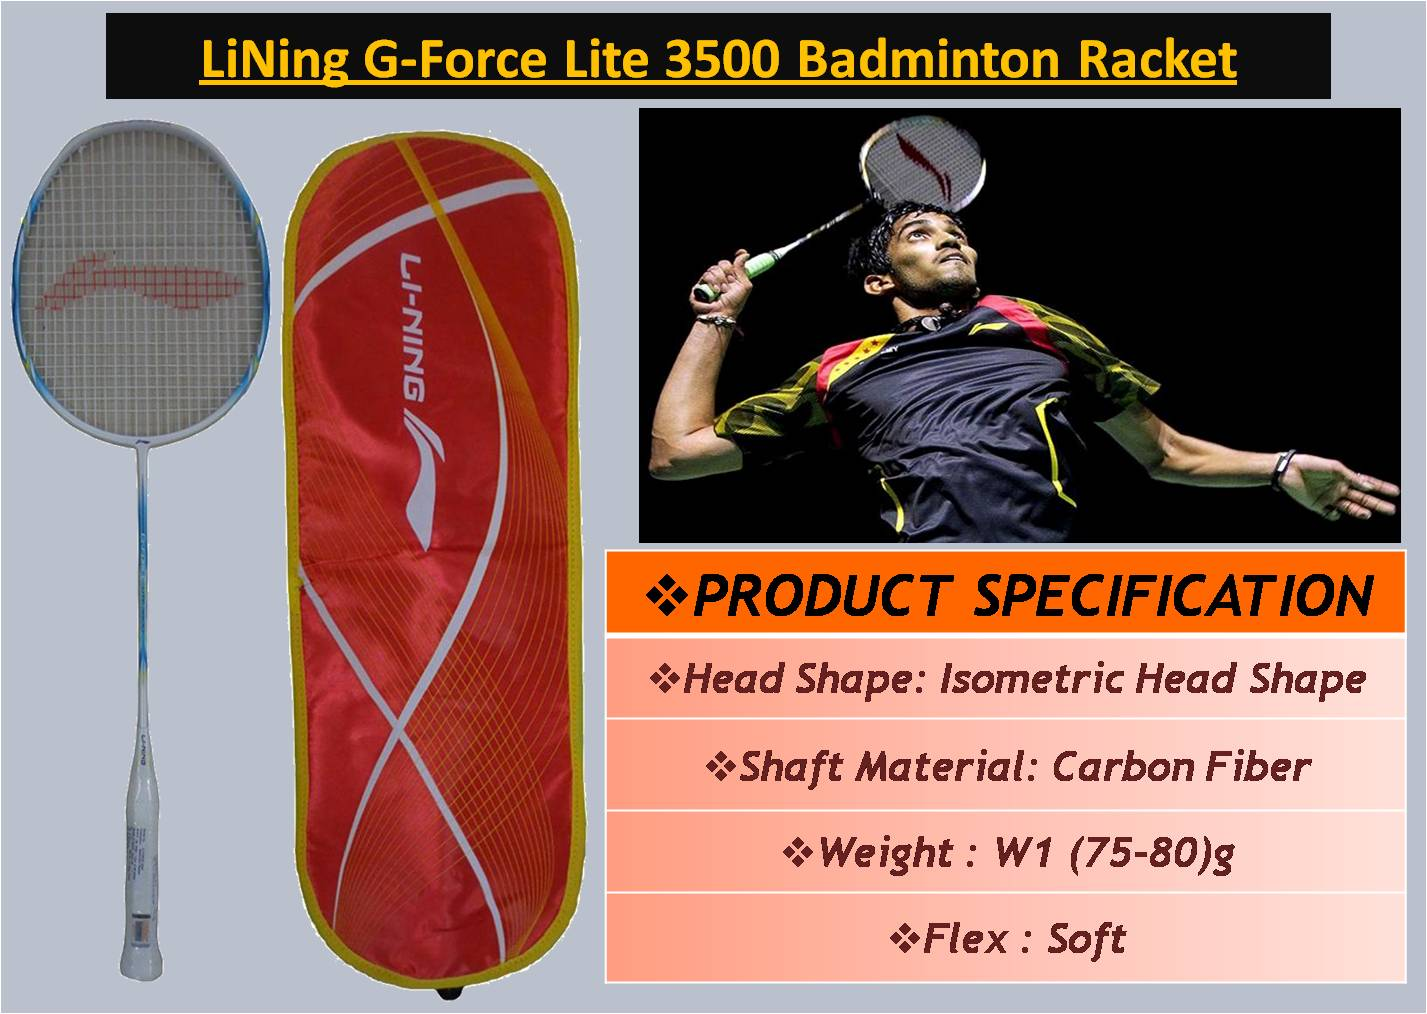 LiNing G-Force Lite 3500 Badminton Racket